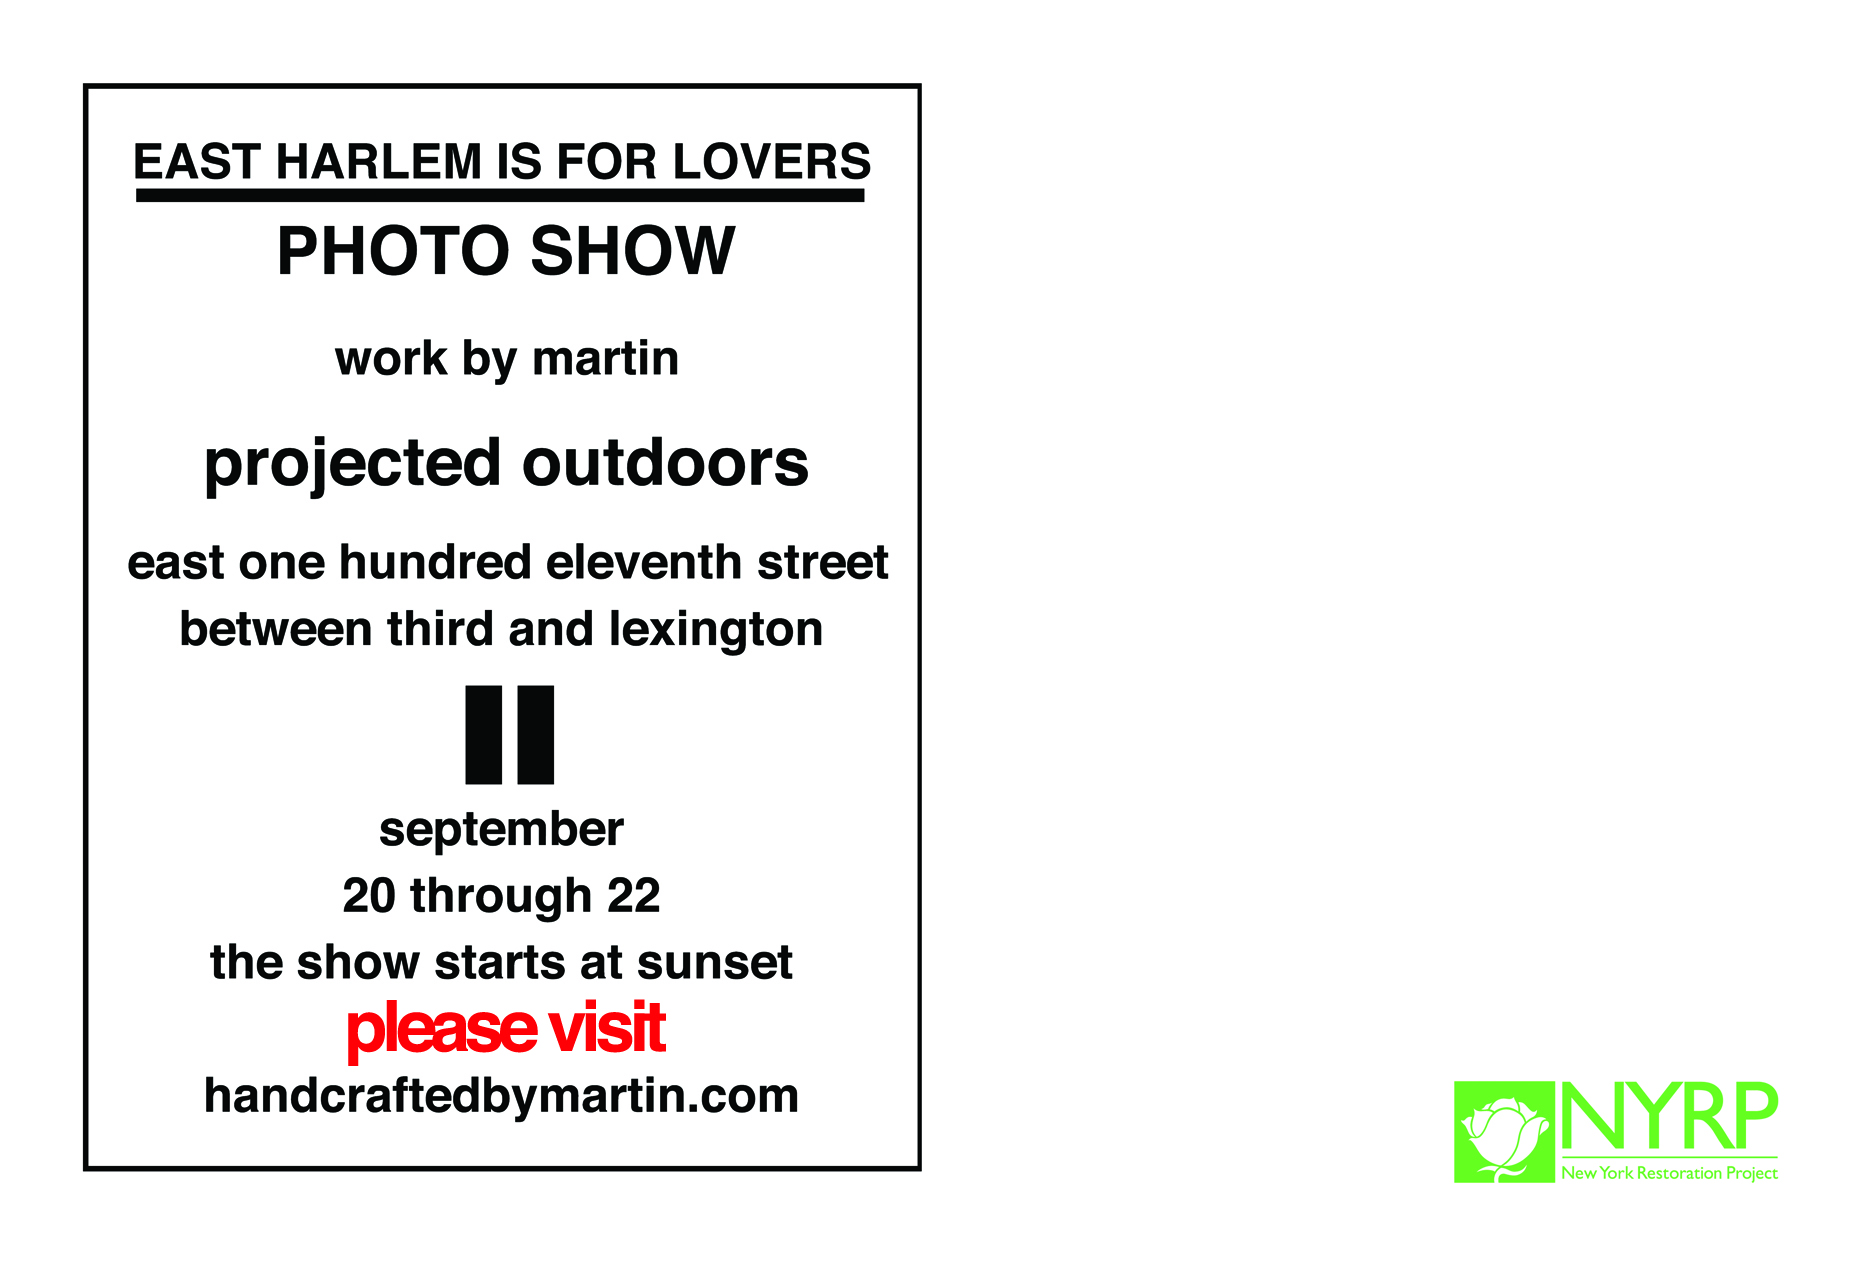 EAST HARLEM IS FOR LOVERS; the martin projection